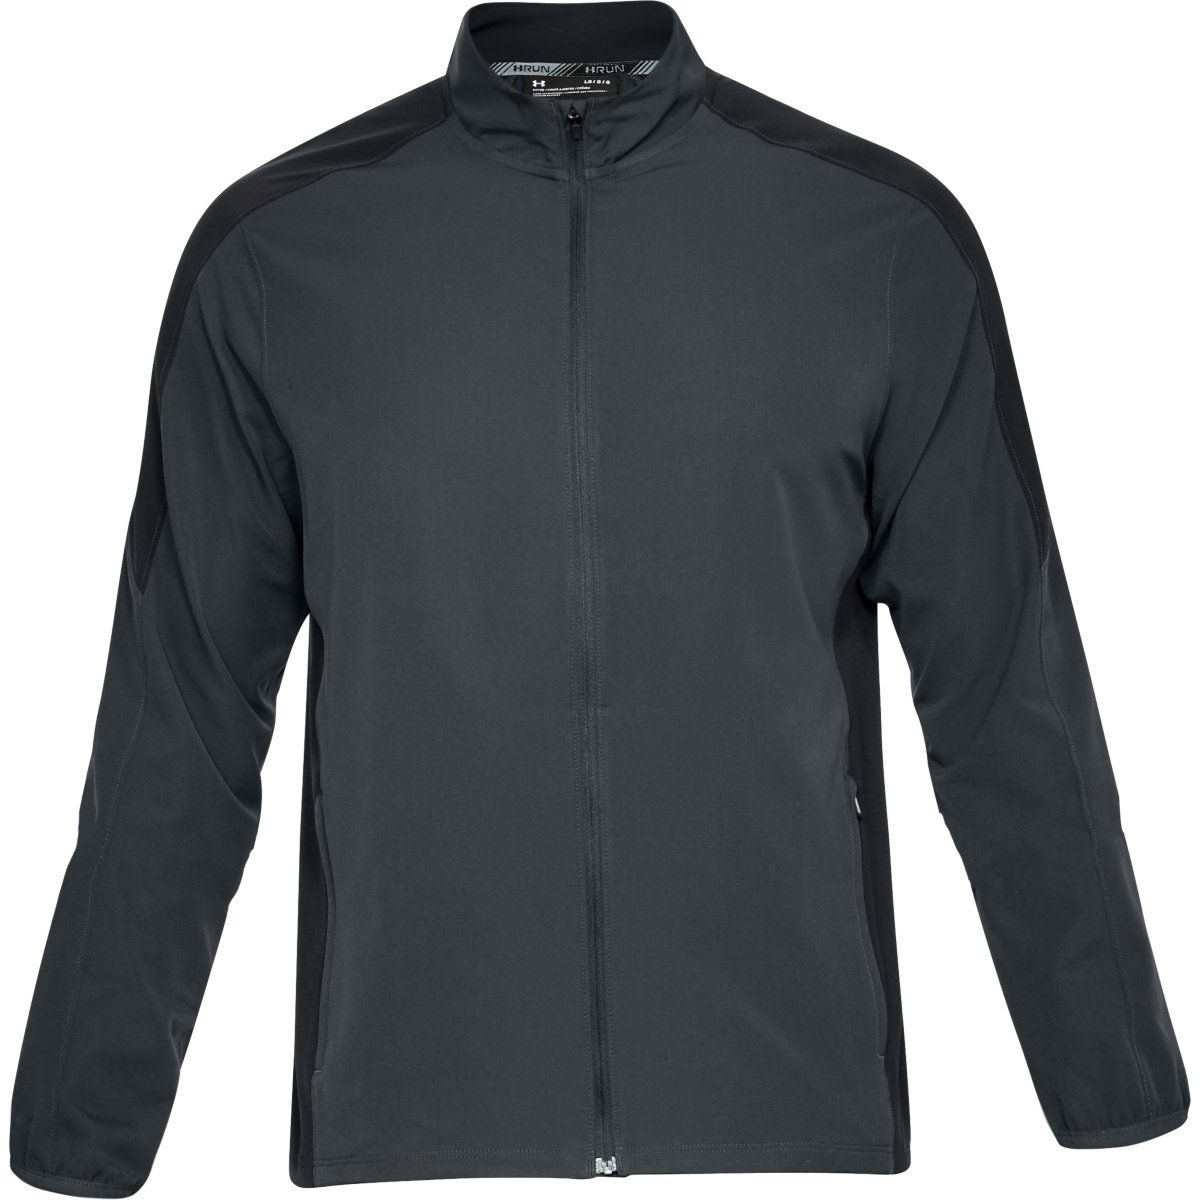 Veste de running Under Armour Out & Back SW - S Anthracite